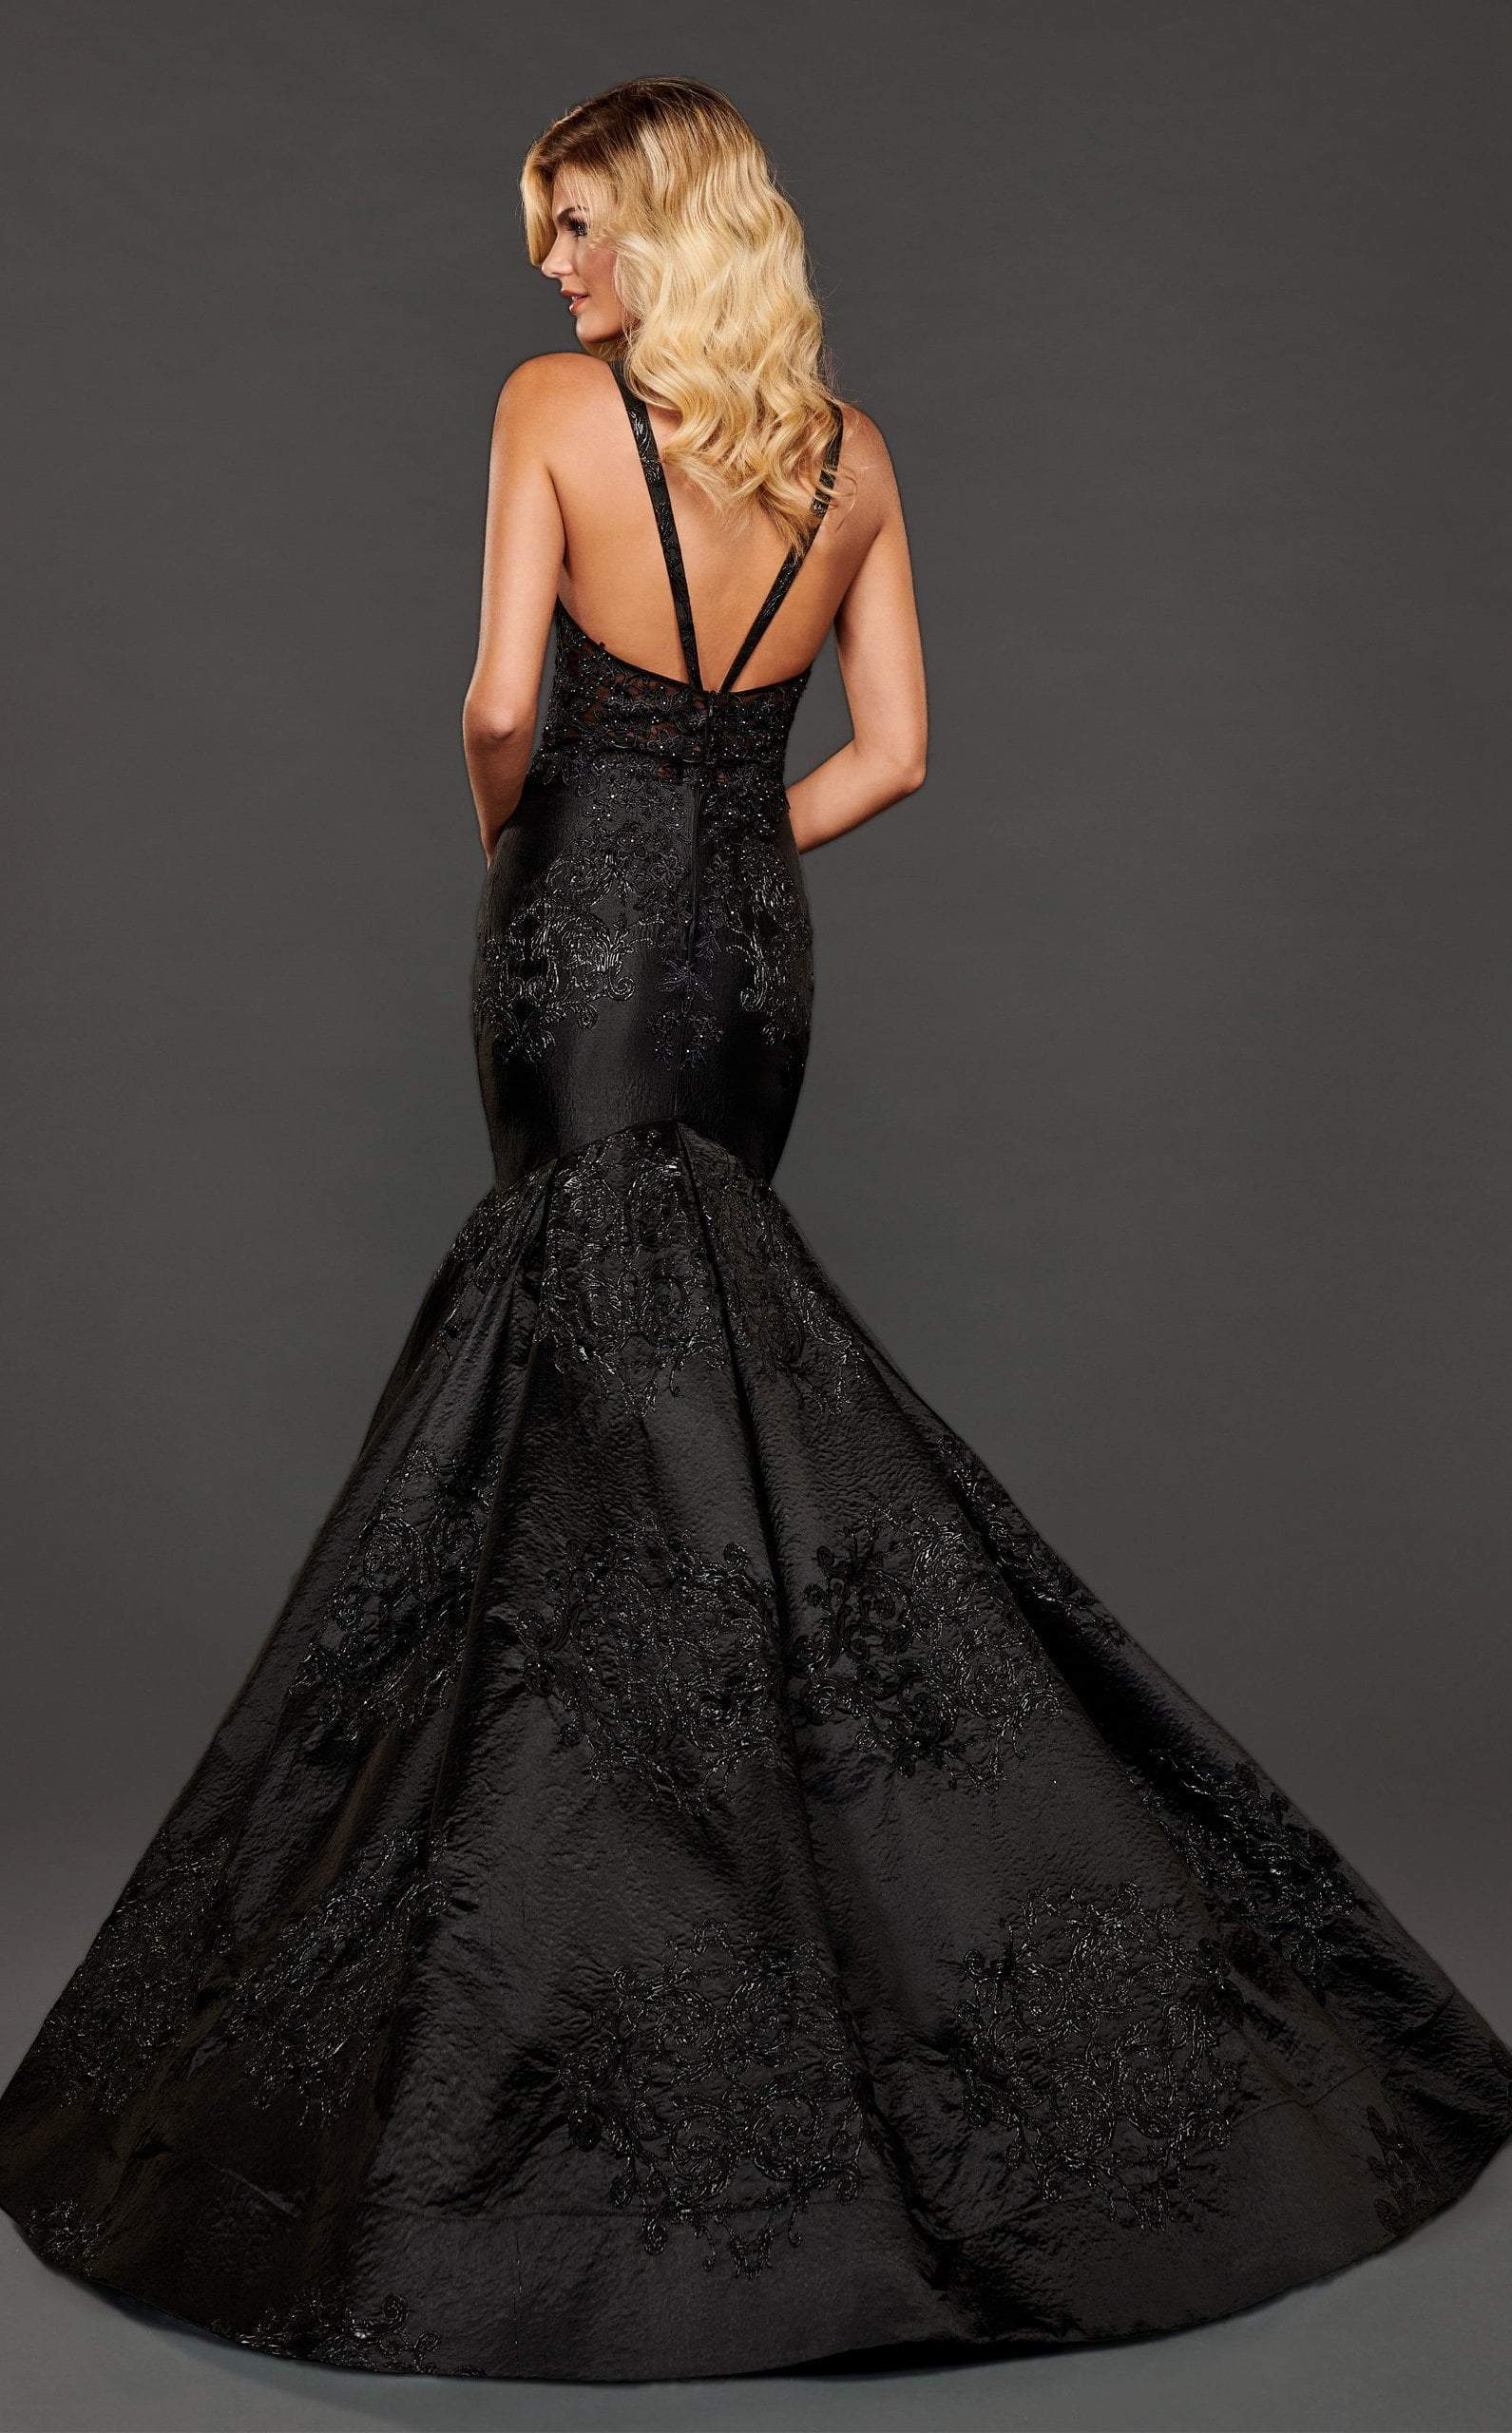 Rachel Allan Couture - 8417 Lace Appliqued Trumpet Evening Gown In Black and Gray